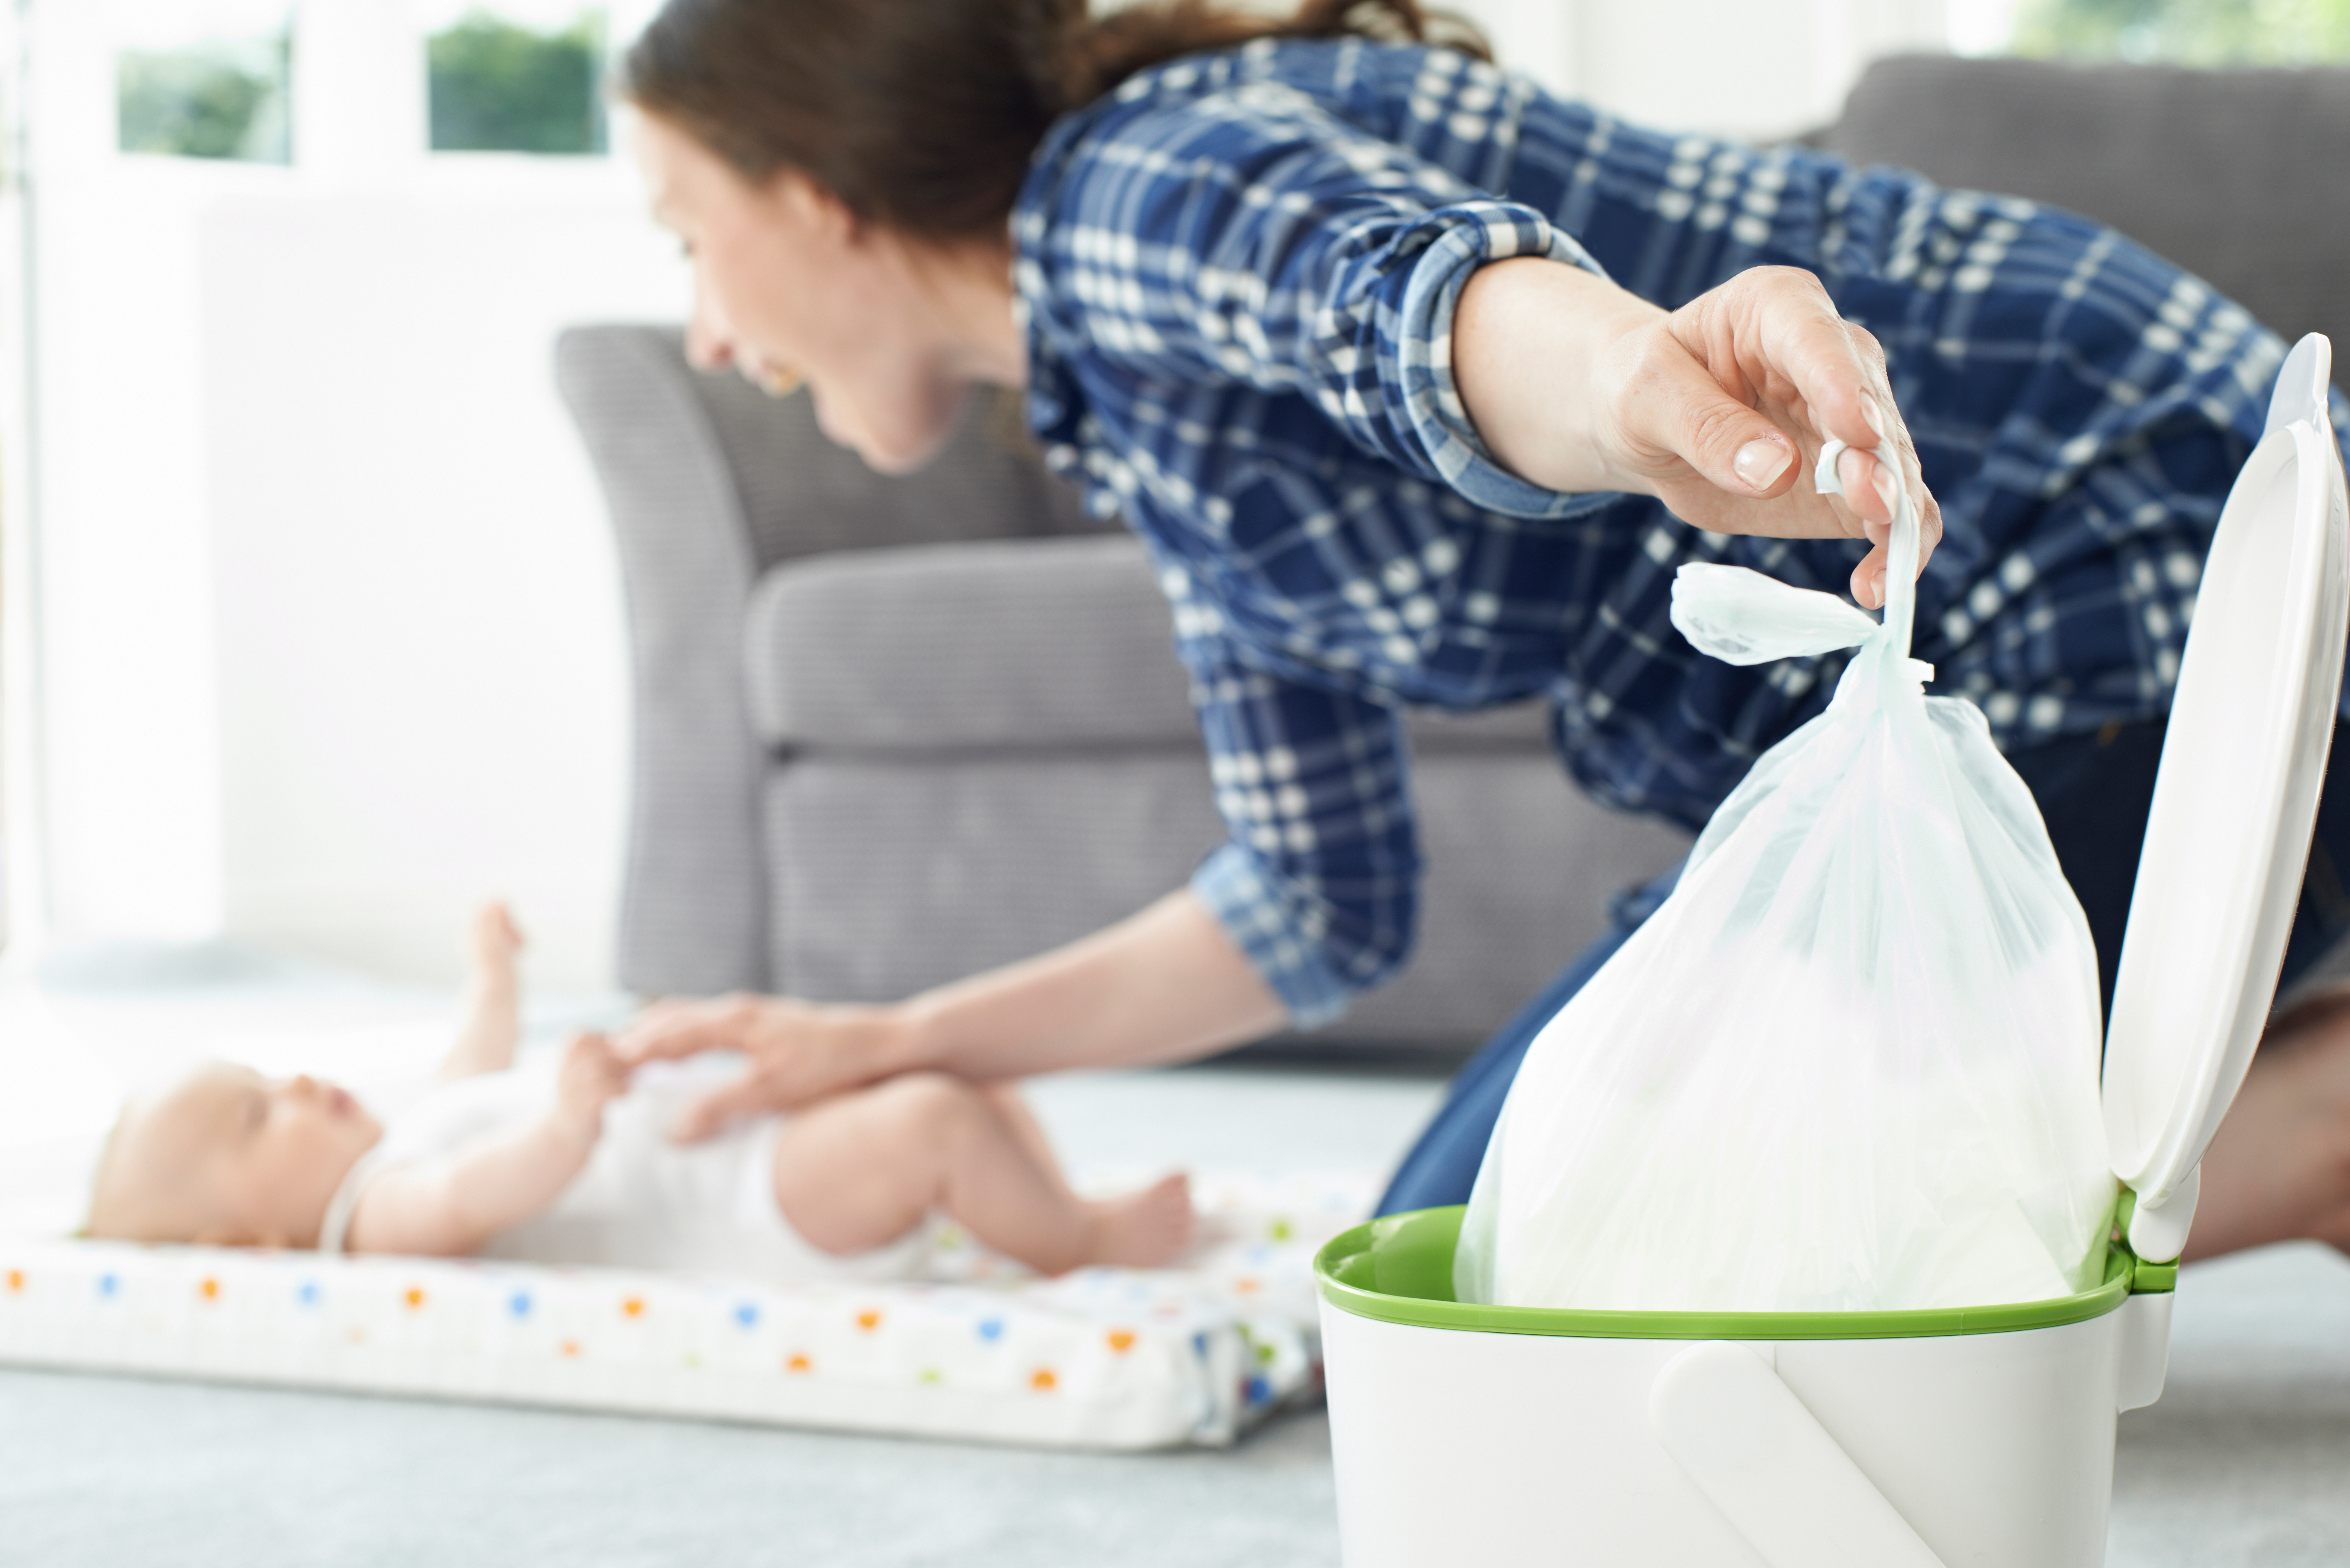 BBI JU EMBRACED project: Moving Europe's mountain of nappies from landfill to helping create useful bio-based products